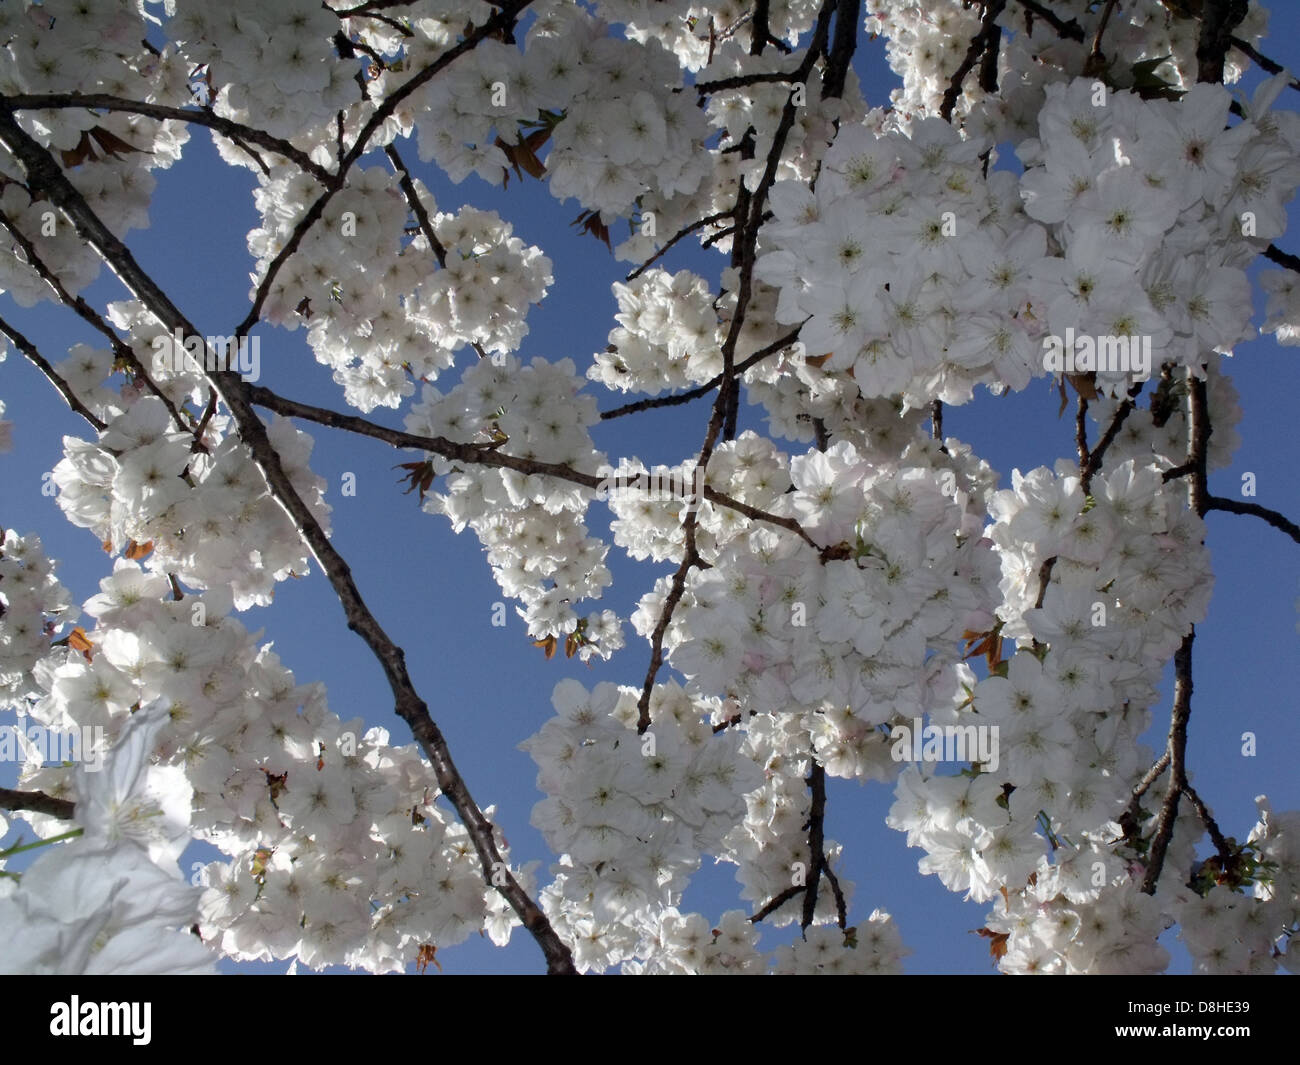 White Spring Cherry Blossom and a super clear blue sky, England UK - Stock Image